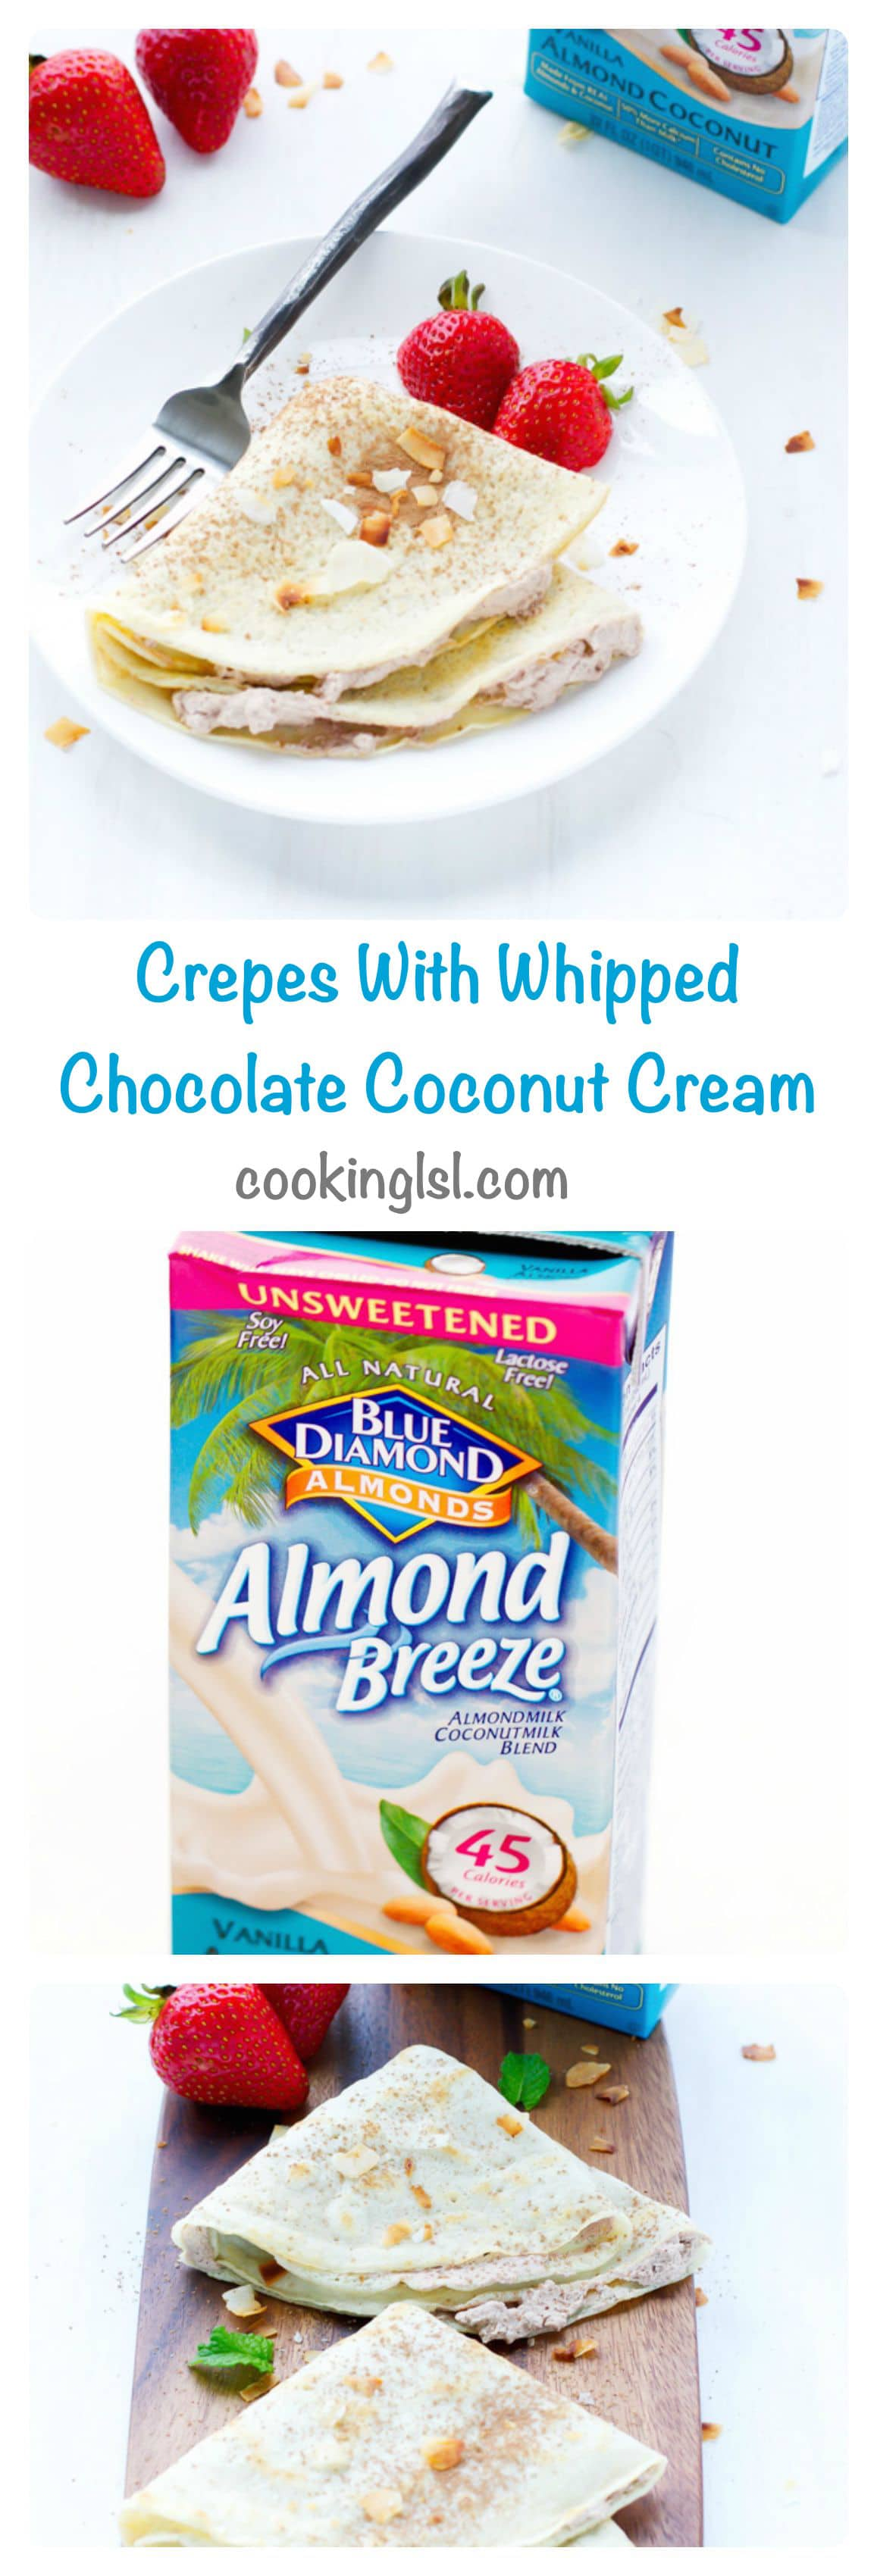 recipe-Crepes-With-Whipped-Chocolate-Coconut-Cream